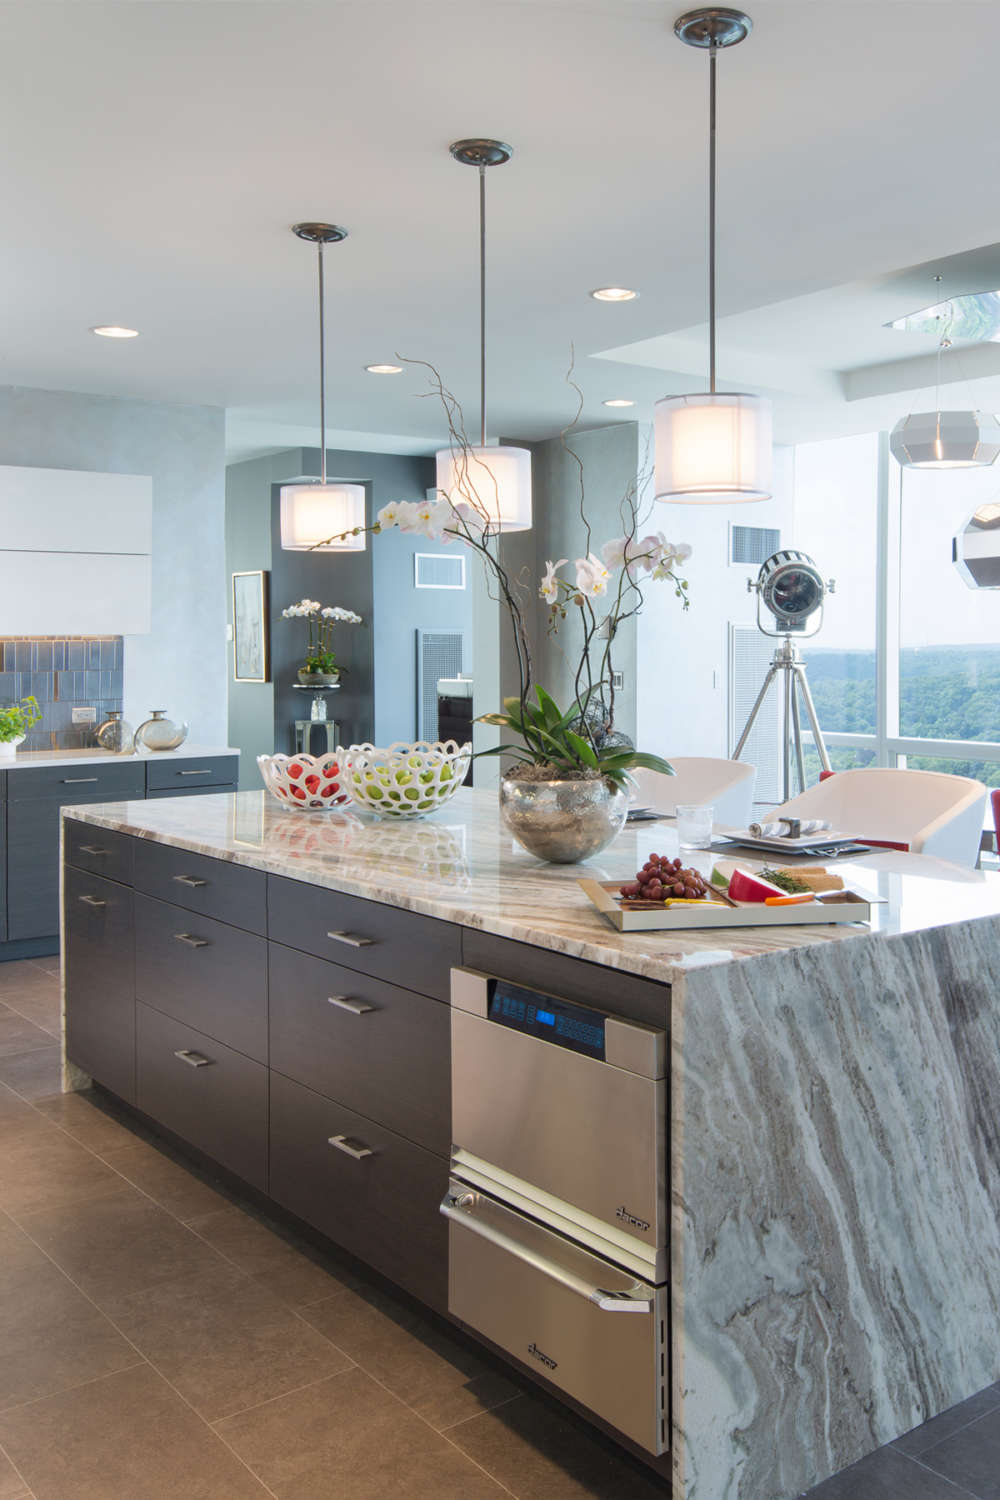 Penthouse kitchen features a large island with pendant lighting, waterfall countertop, and flat panel, frameless Artcfraft cabinet in rift cut white oak with a dark stain. Design by Jeff Eakley of Bilotta Kitchens.